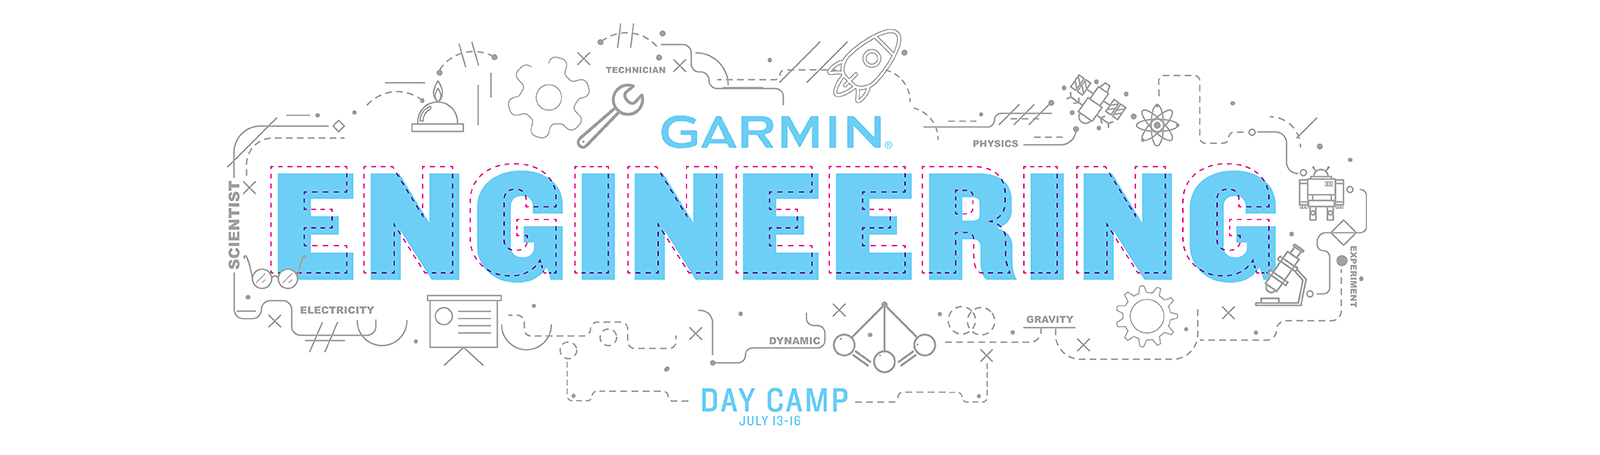 Garmin Engineering Day Camp Collateral - Banner Graphic